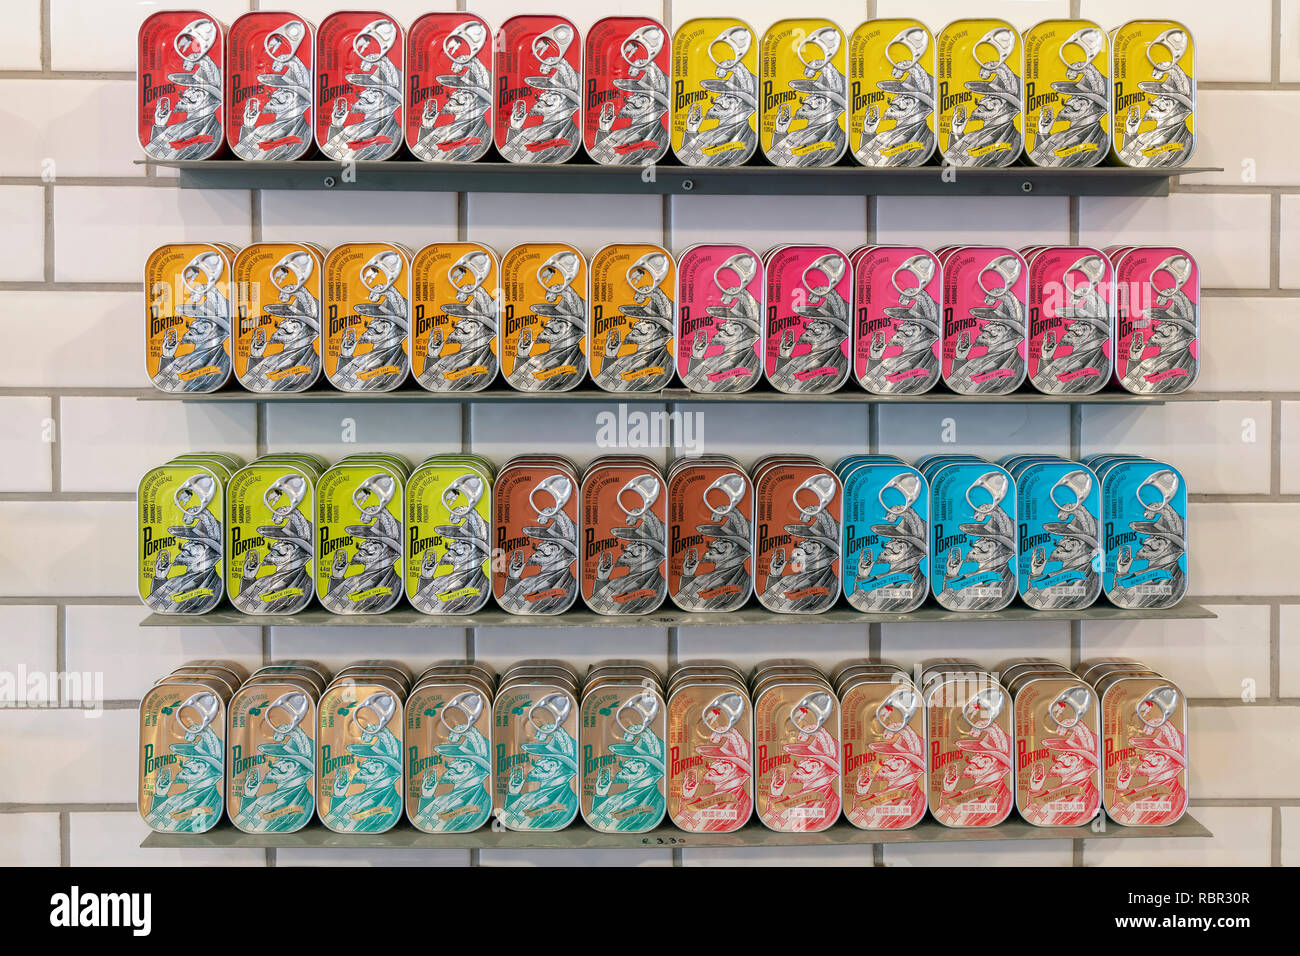 Traditional canned fish for sale at Conserveira de Lisboa shop, Lisbon, Portugal - Stock Image